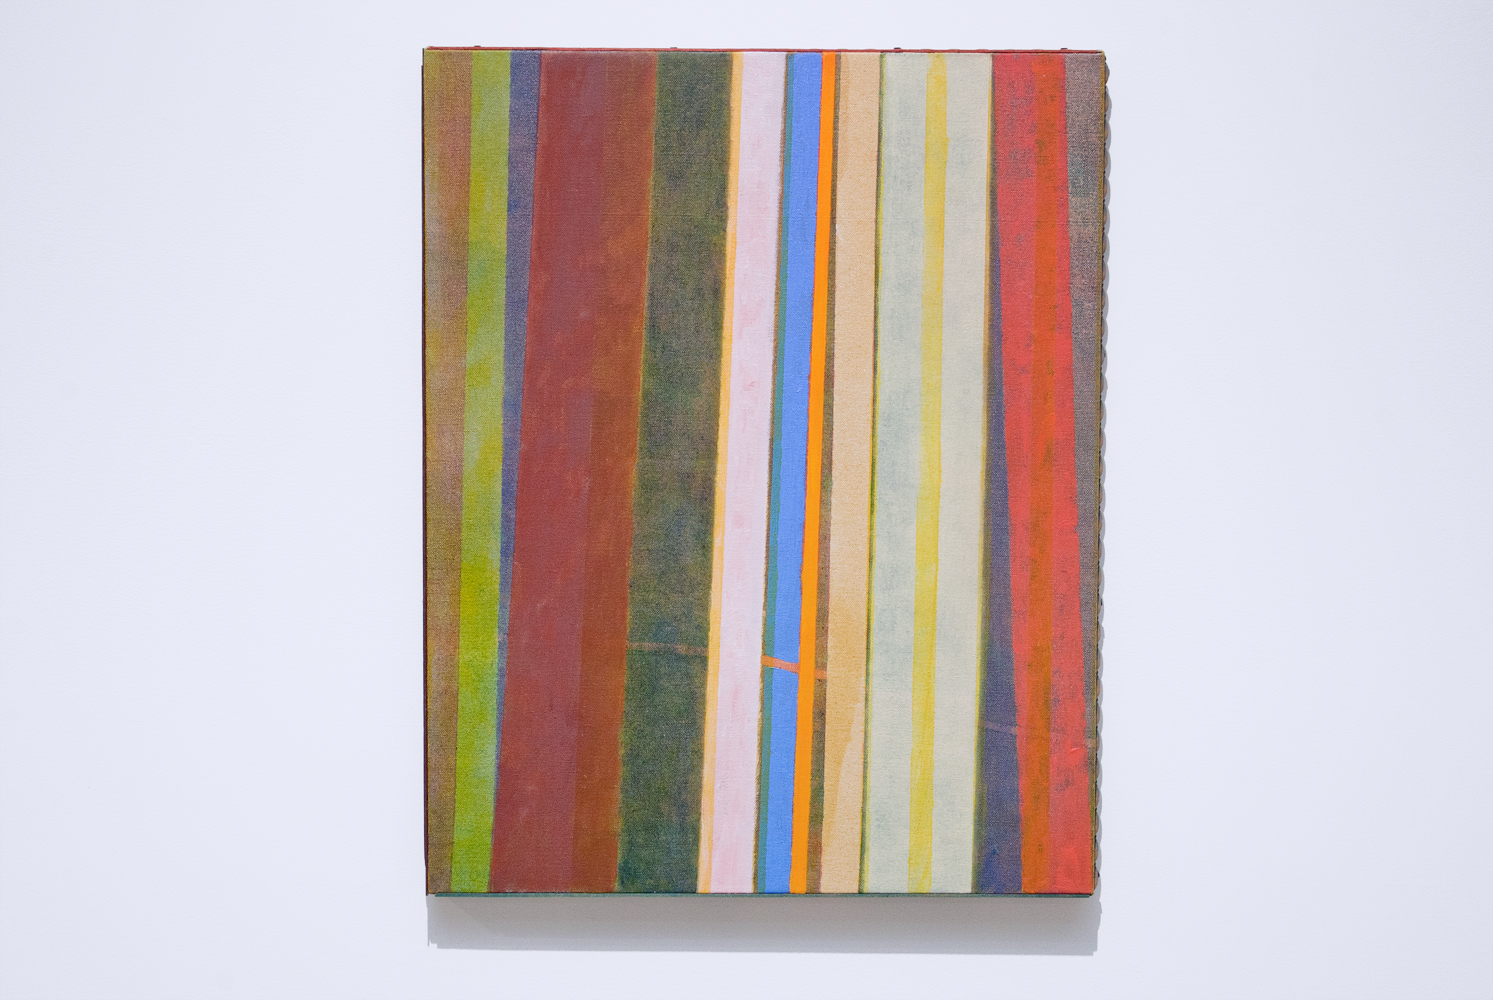 permitted assets , 2015.Oil and distemper on canvas, stain and paint on wood,20 ½ x 16 ½ inches.Book: Focillon, Henri.  The Life Forms in Art